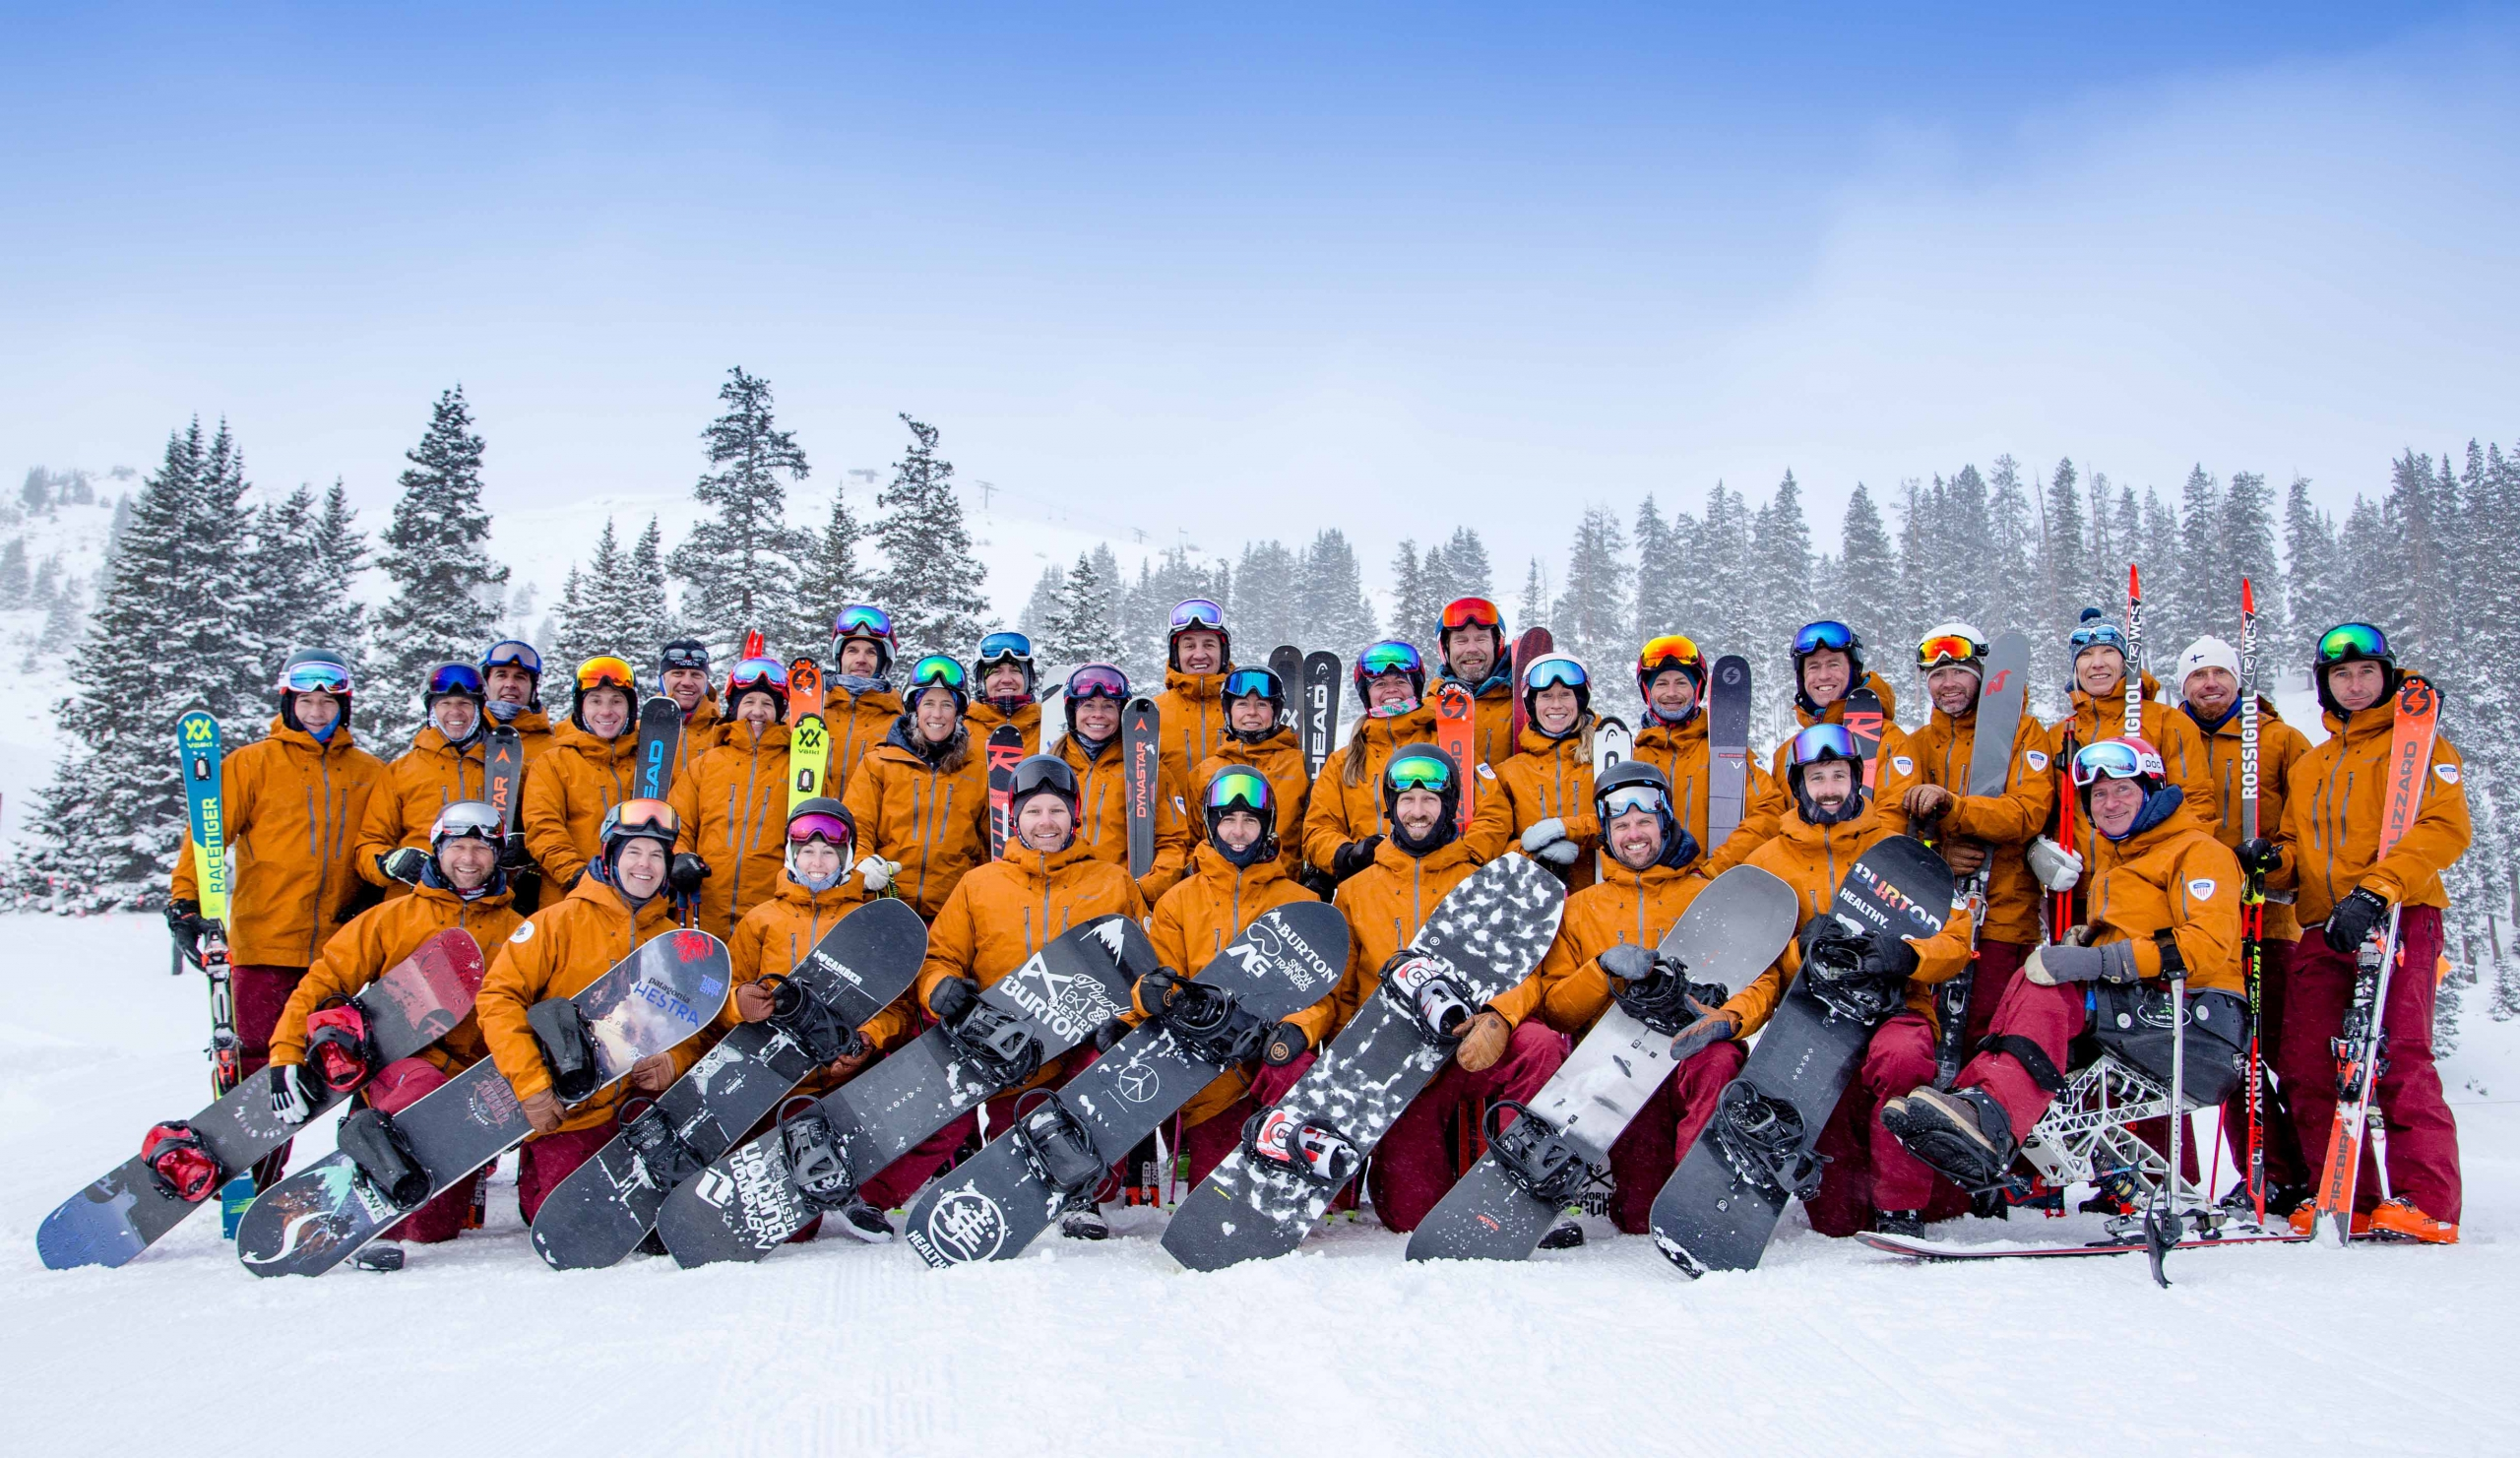 The PSIA-AASI National Team Photo at A-Basin in Fall 2019